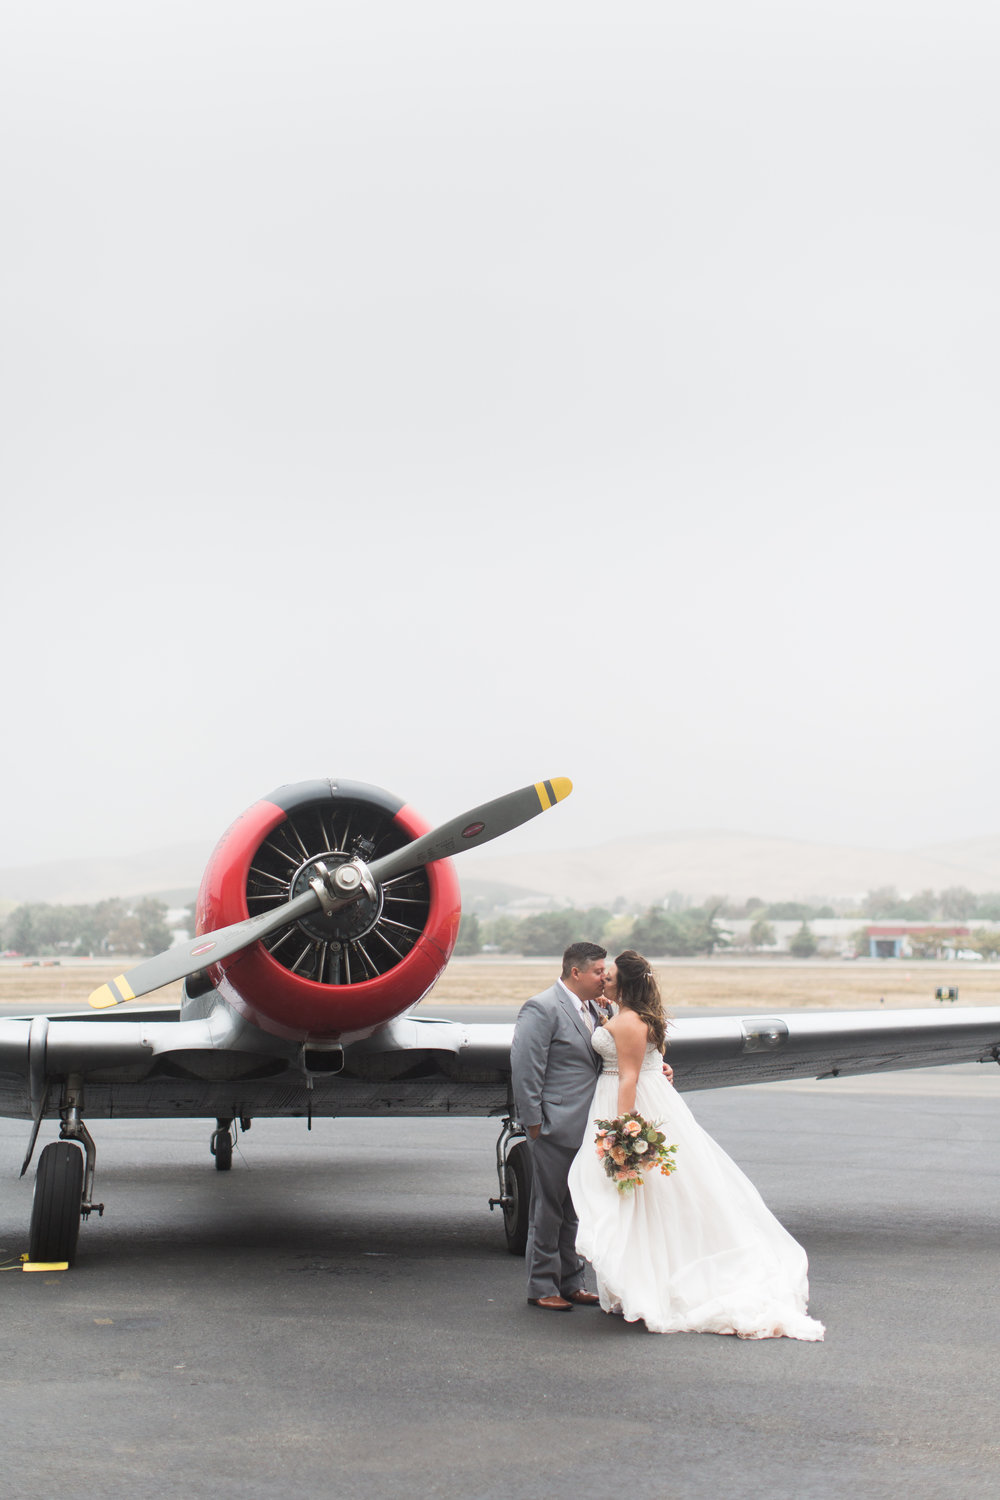 airport-hanger-wedding-at-attitude-aviation-in-livermore-79.jpg